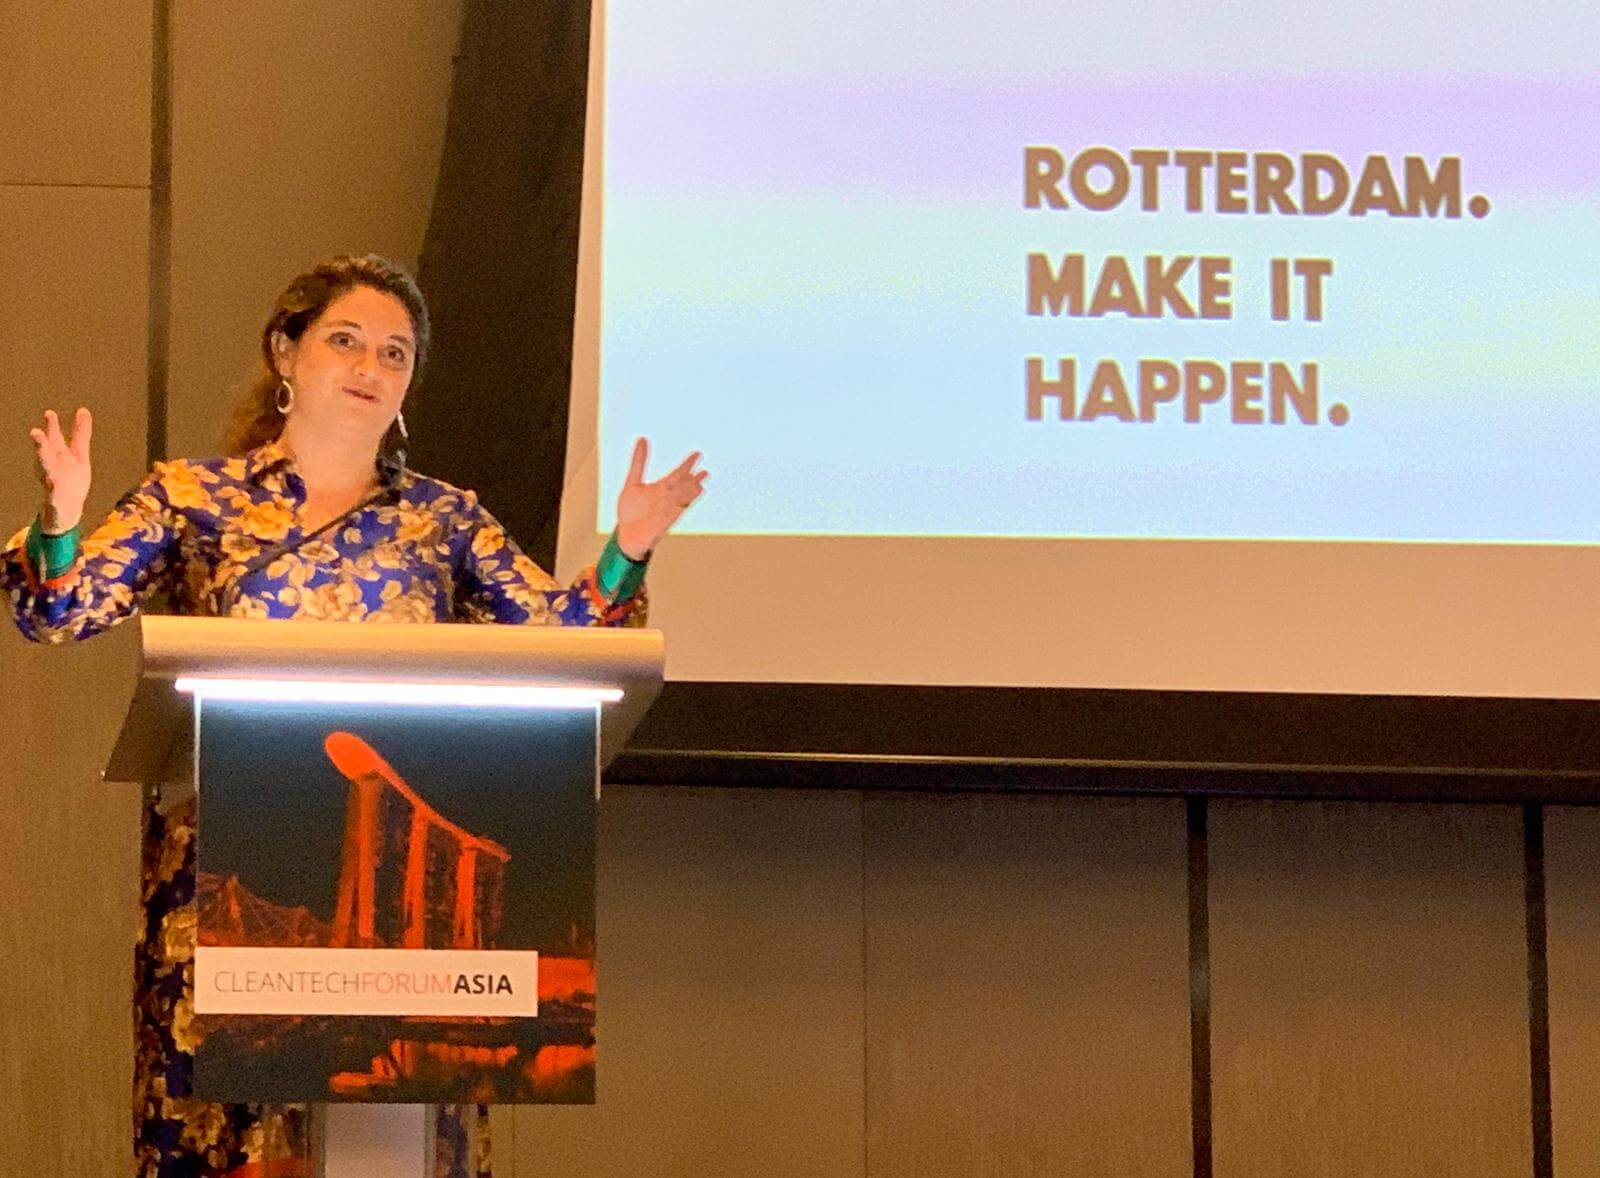 #RotterdamSingapore #CleanTech mission 2019, day 2: keynote speech by Vice Mayor Kathmann at Cleantech Forum Asia.